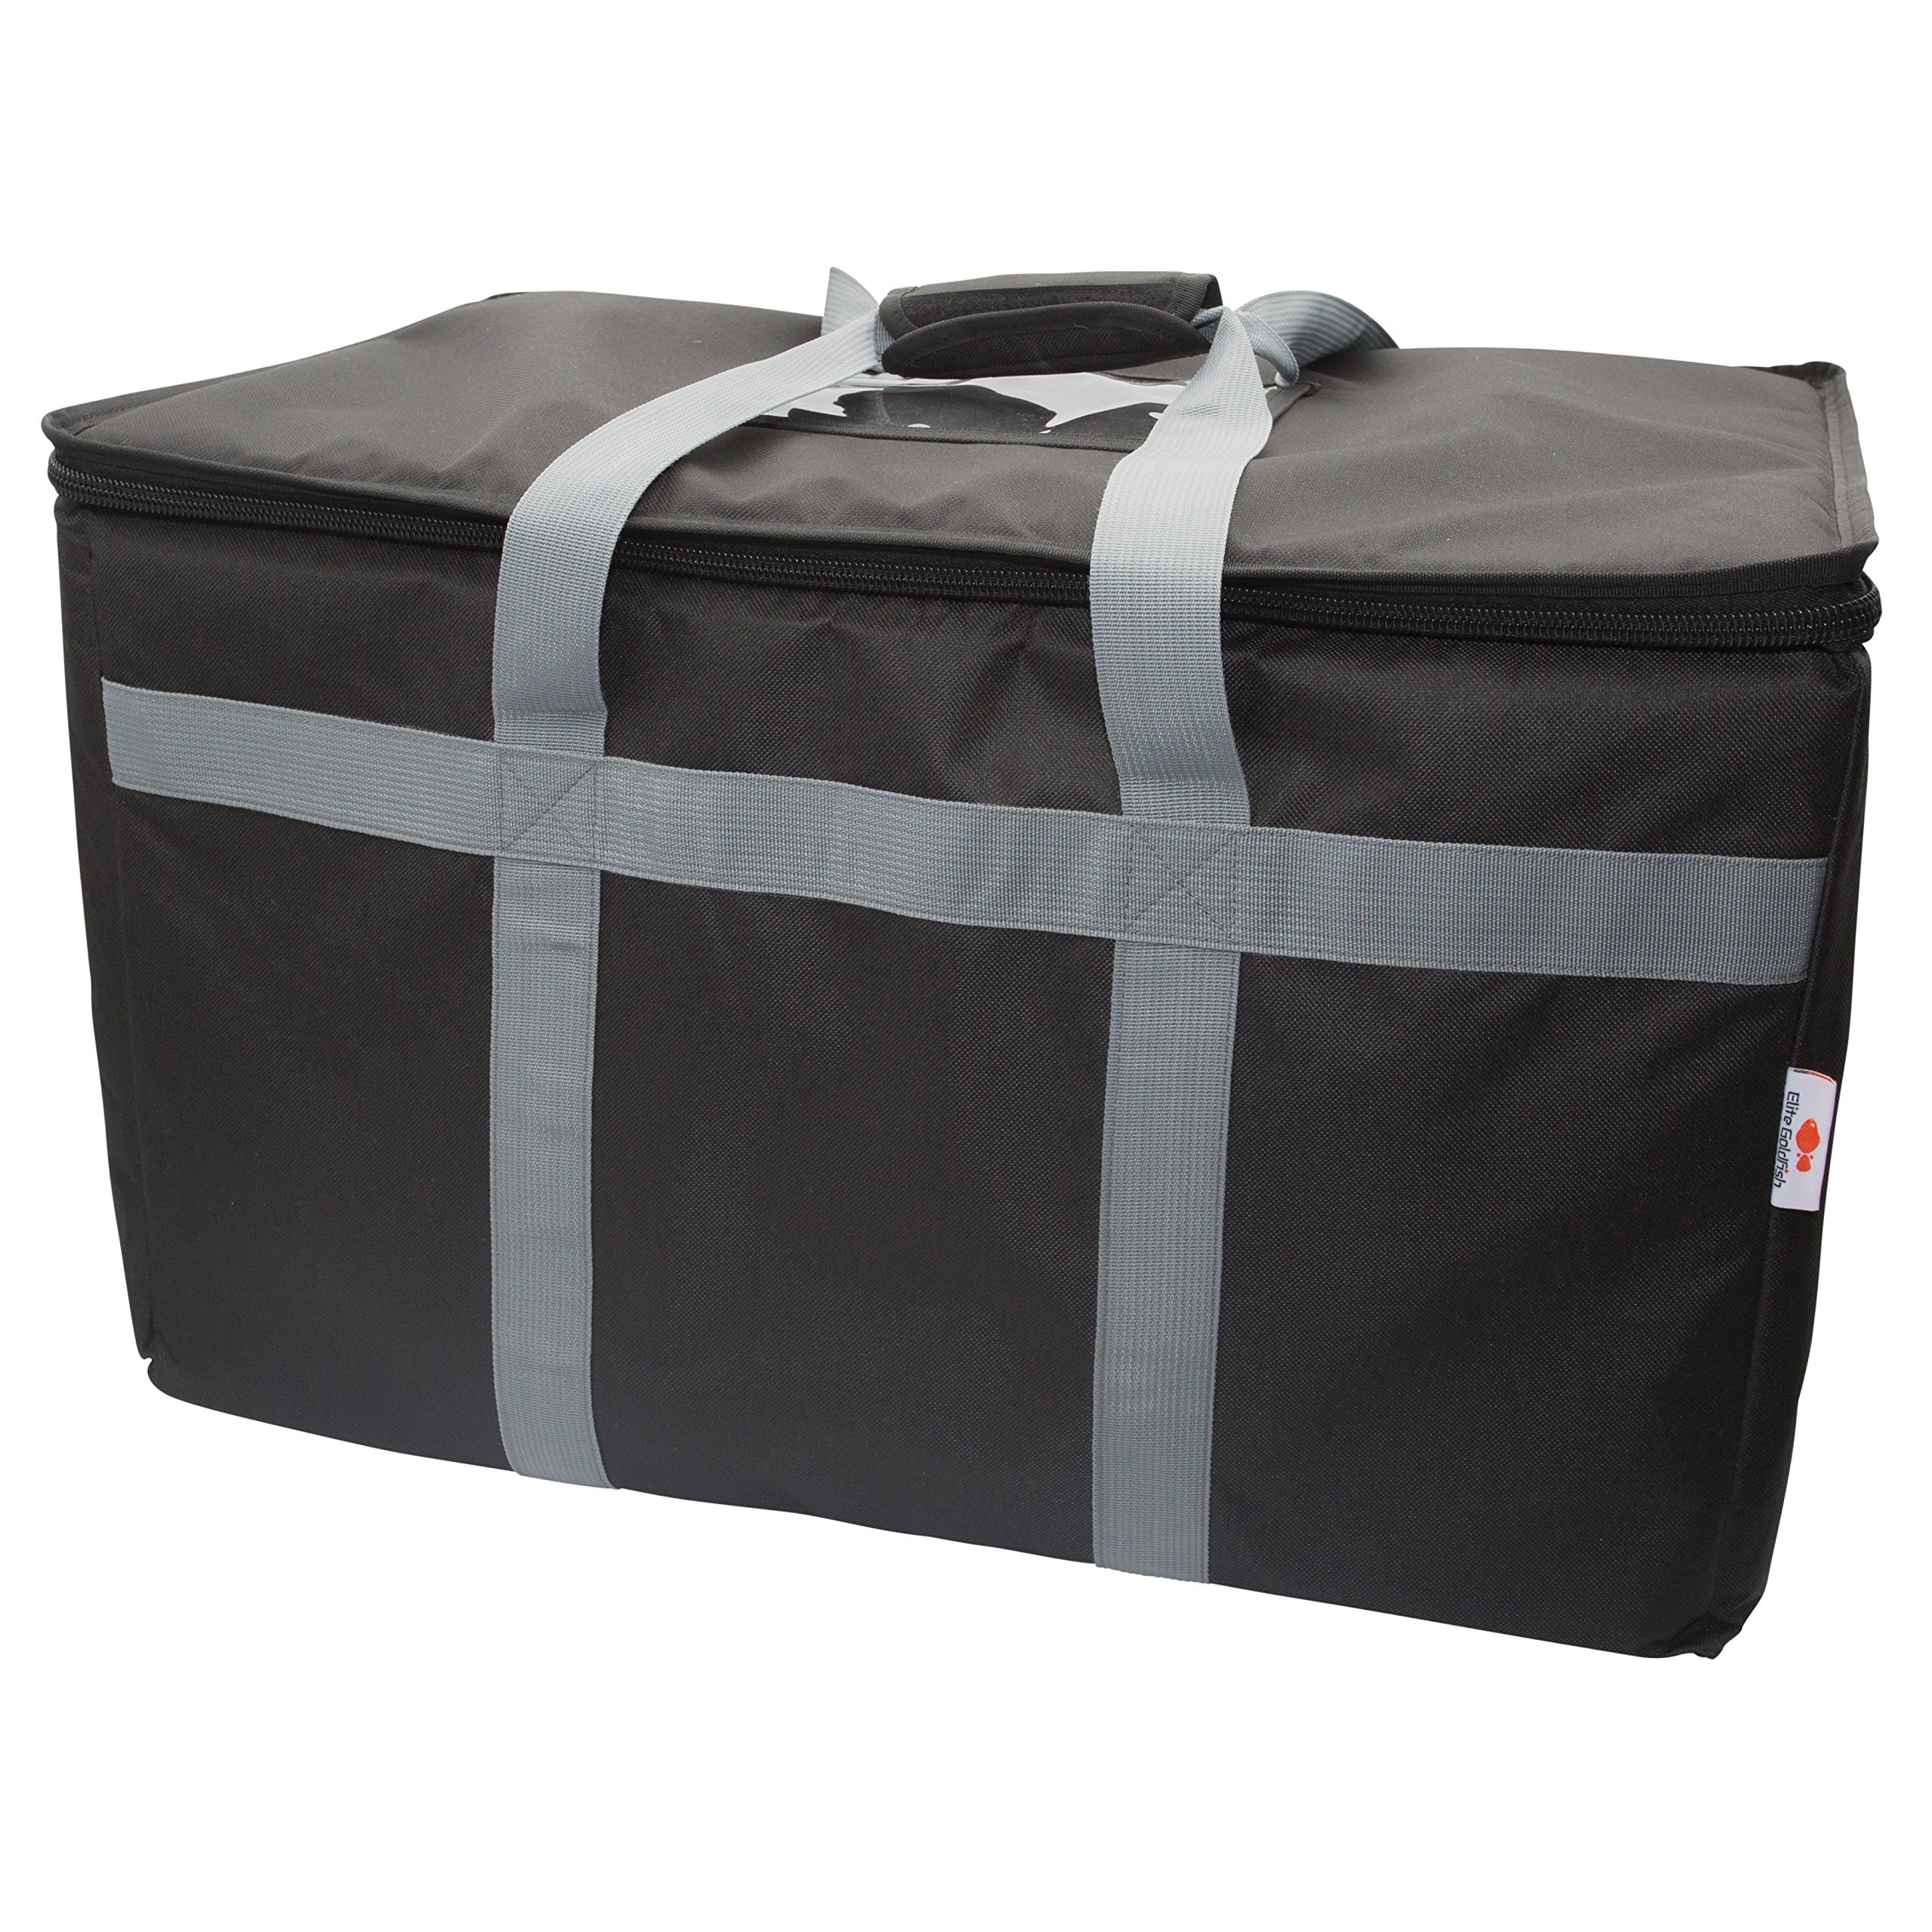 Commercial Quality Food Delivery Bag–Leak Proof–Extra Strength Zipper-Thick Insulation–Ideal for Catering,Uber Eats, Doordash– by Elite Goldfish